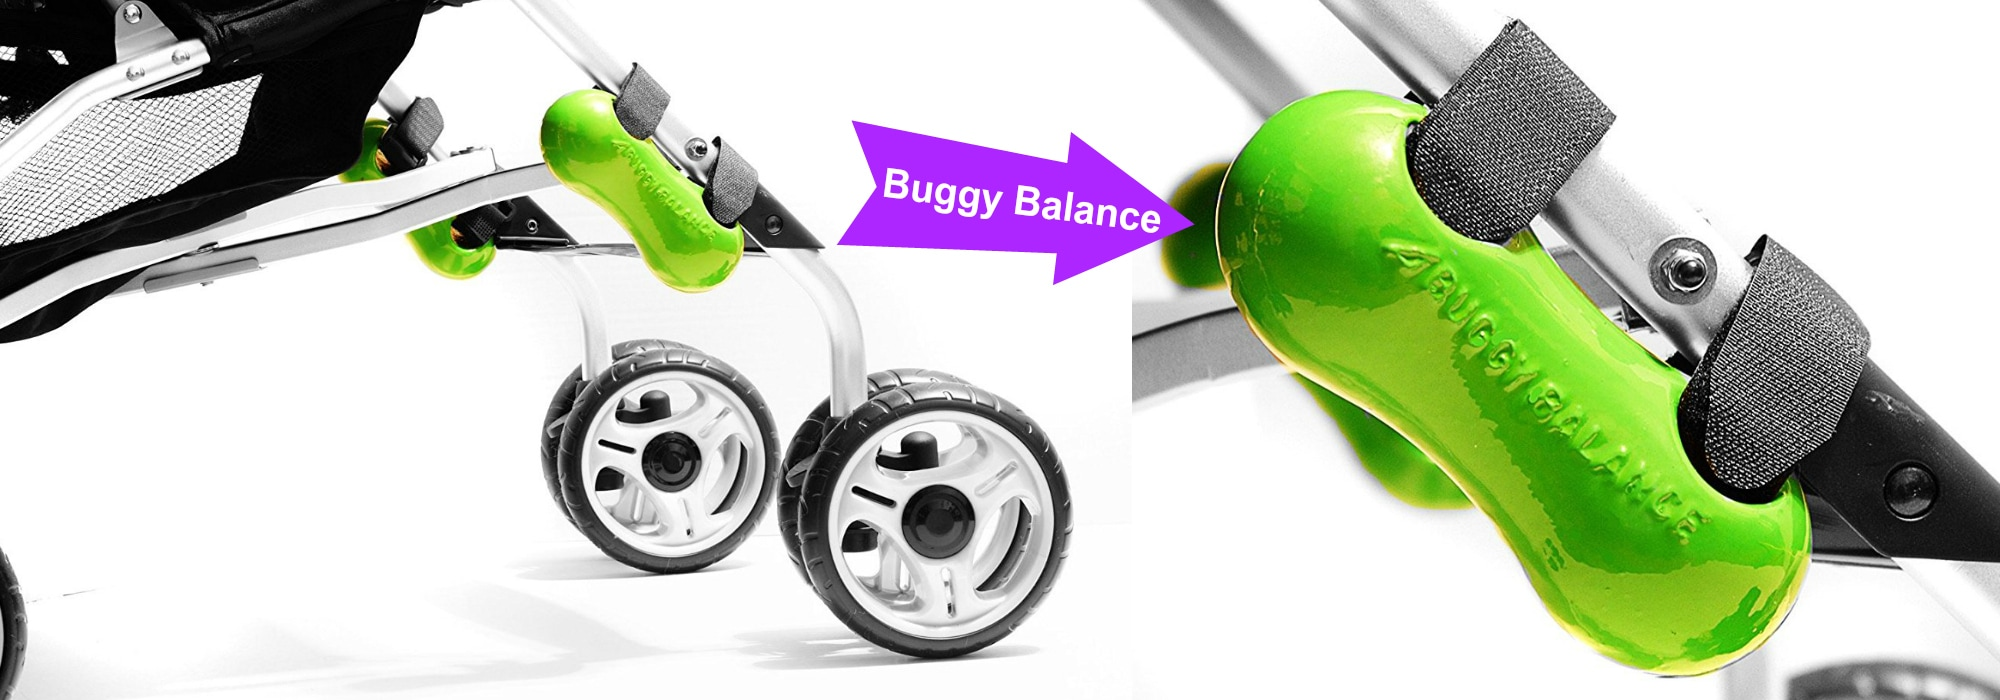 Win a set of Buggy Balance umbrella stroller anti-tip weights in US Japan Fam's $500 value